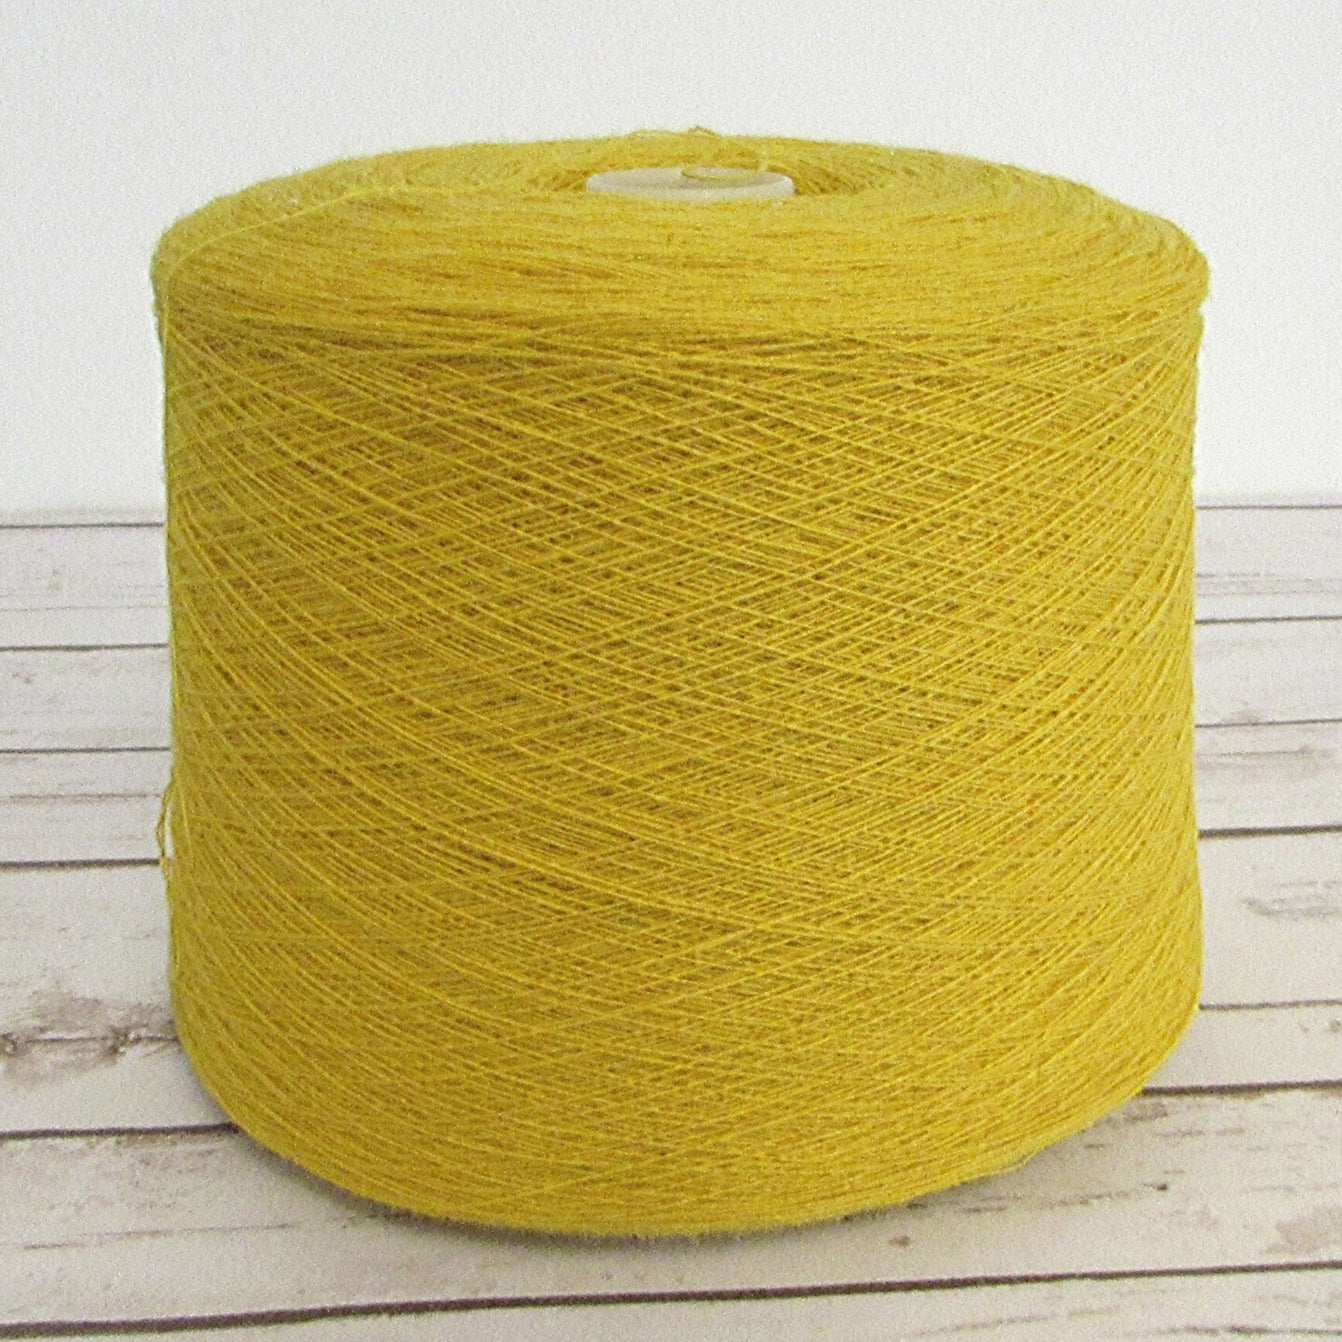 Lambs Wool Weaving Yarn 22 Microns